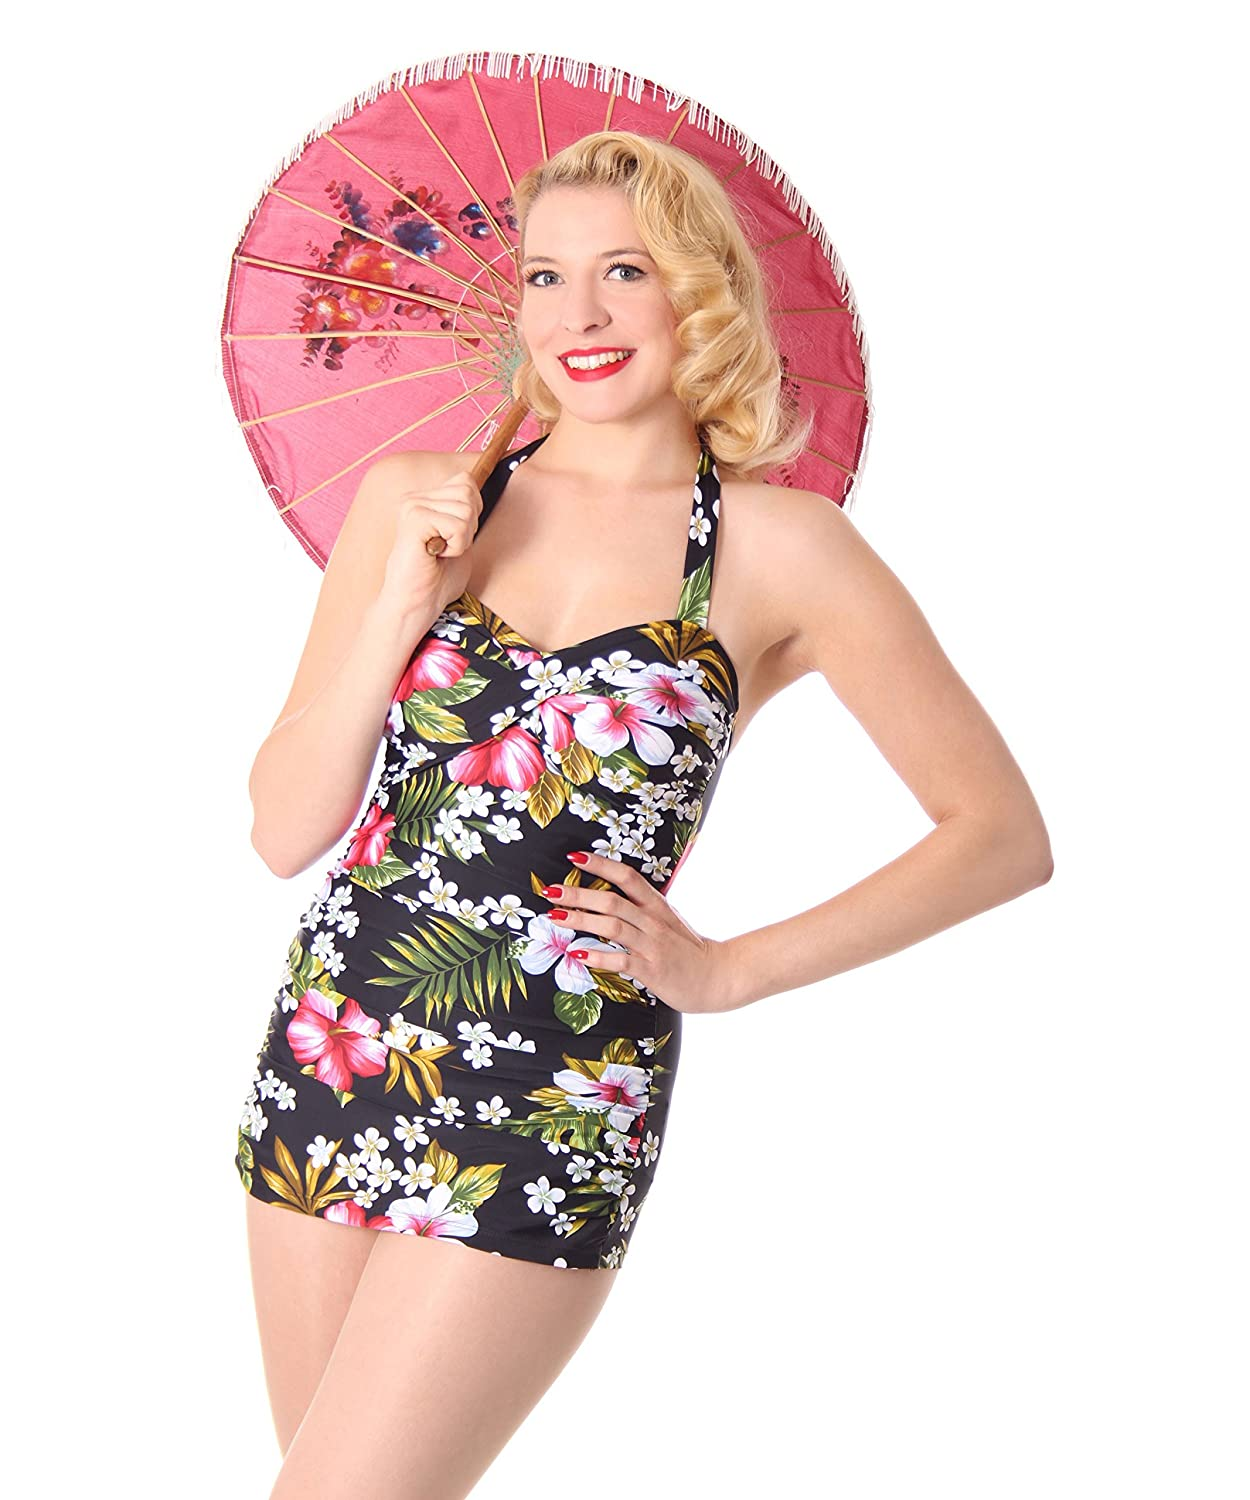 SugarShock Liz 50er Jahre retro Hawaii Pin Up Swimsuit Rockabilly Badeanzug